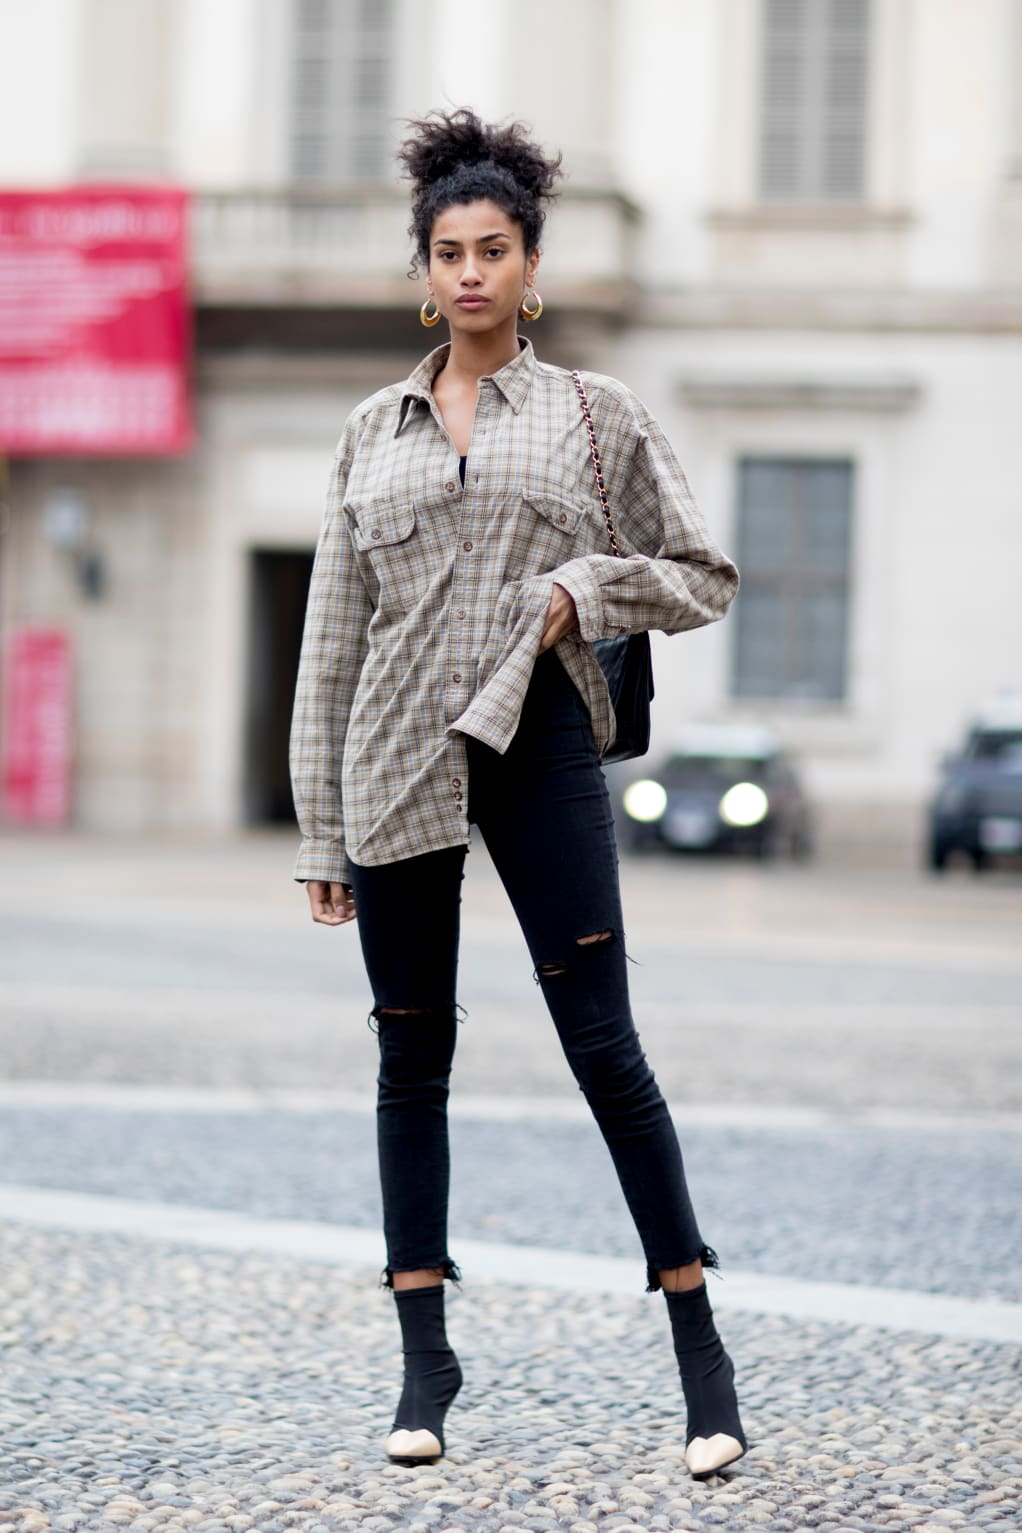 25 Best Plaid Shirts — Casual Cool Fall or Winter Outfit Idea — Model Street Style Imaan Hamman in a neutral plaid button-down, ripped black skinny jeans, and ankle boots